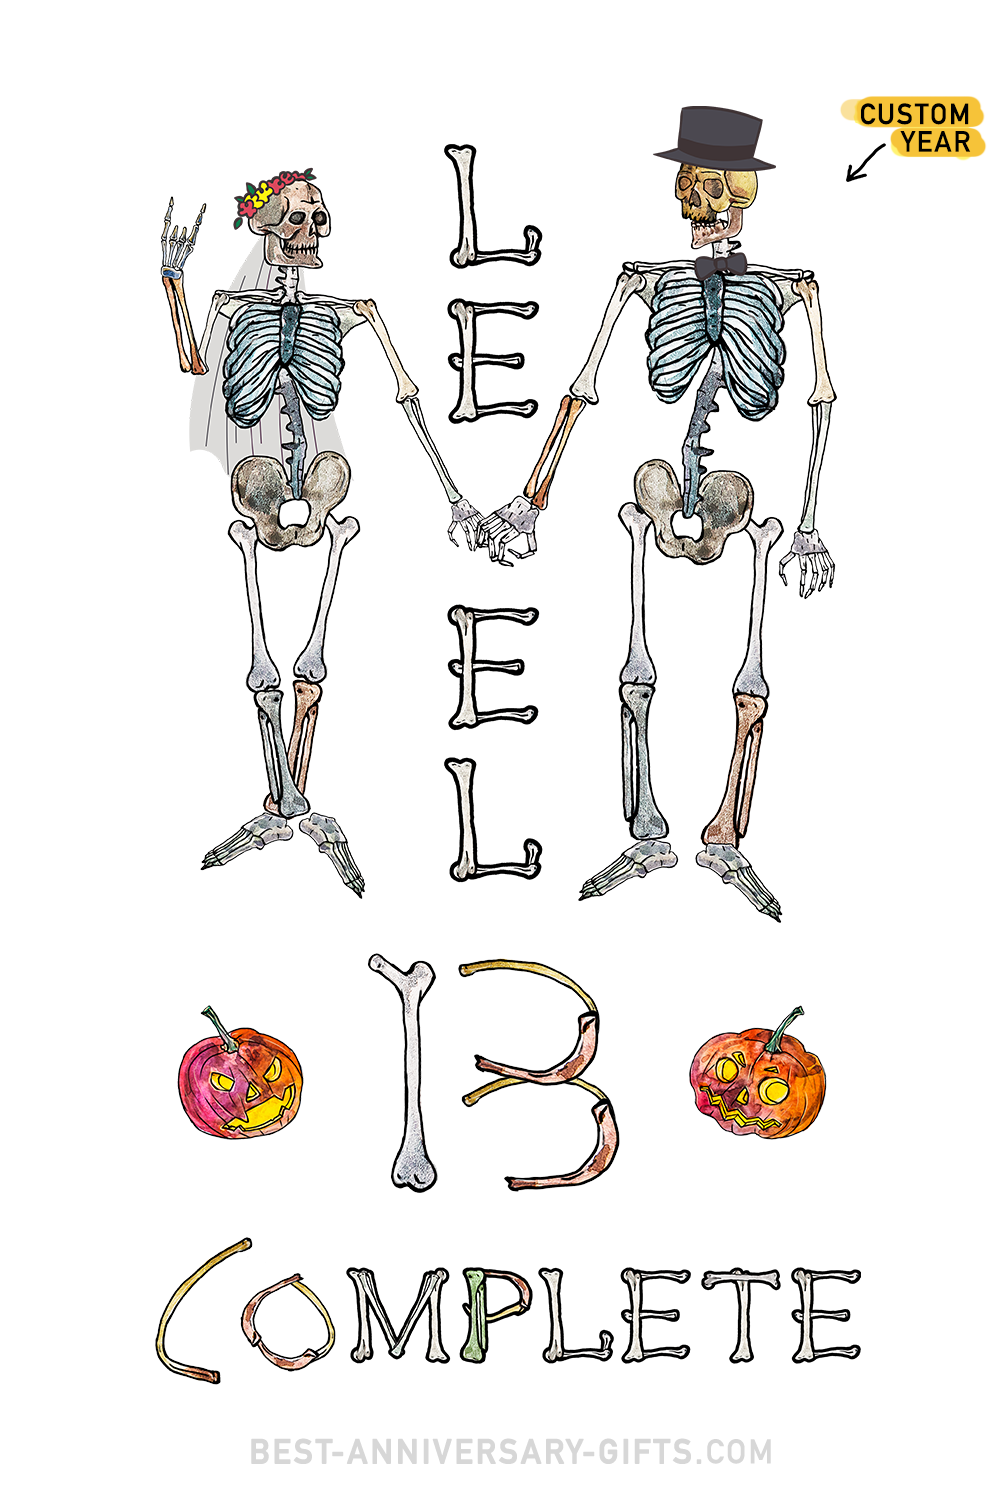 Level 13 Completed - Funny Skeletons Custom Wedding Anniversary PNG file